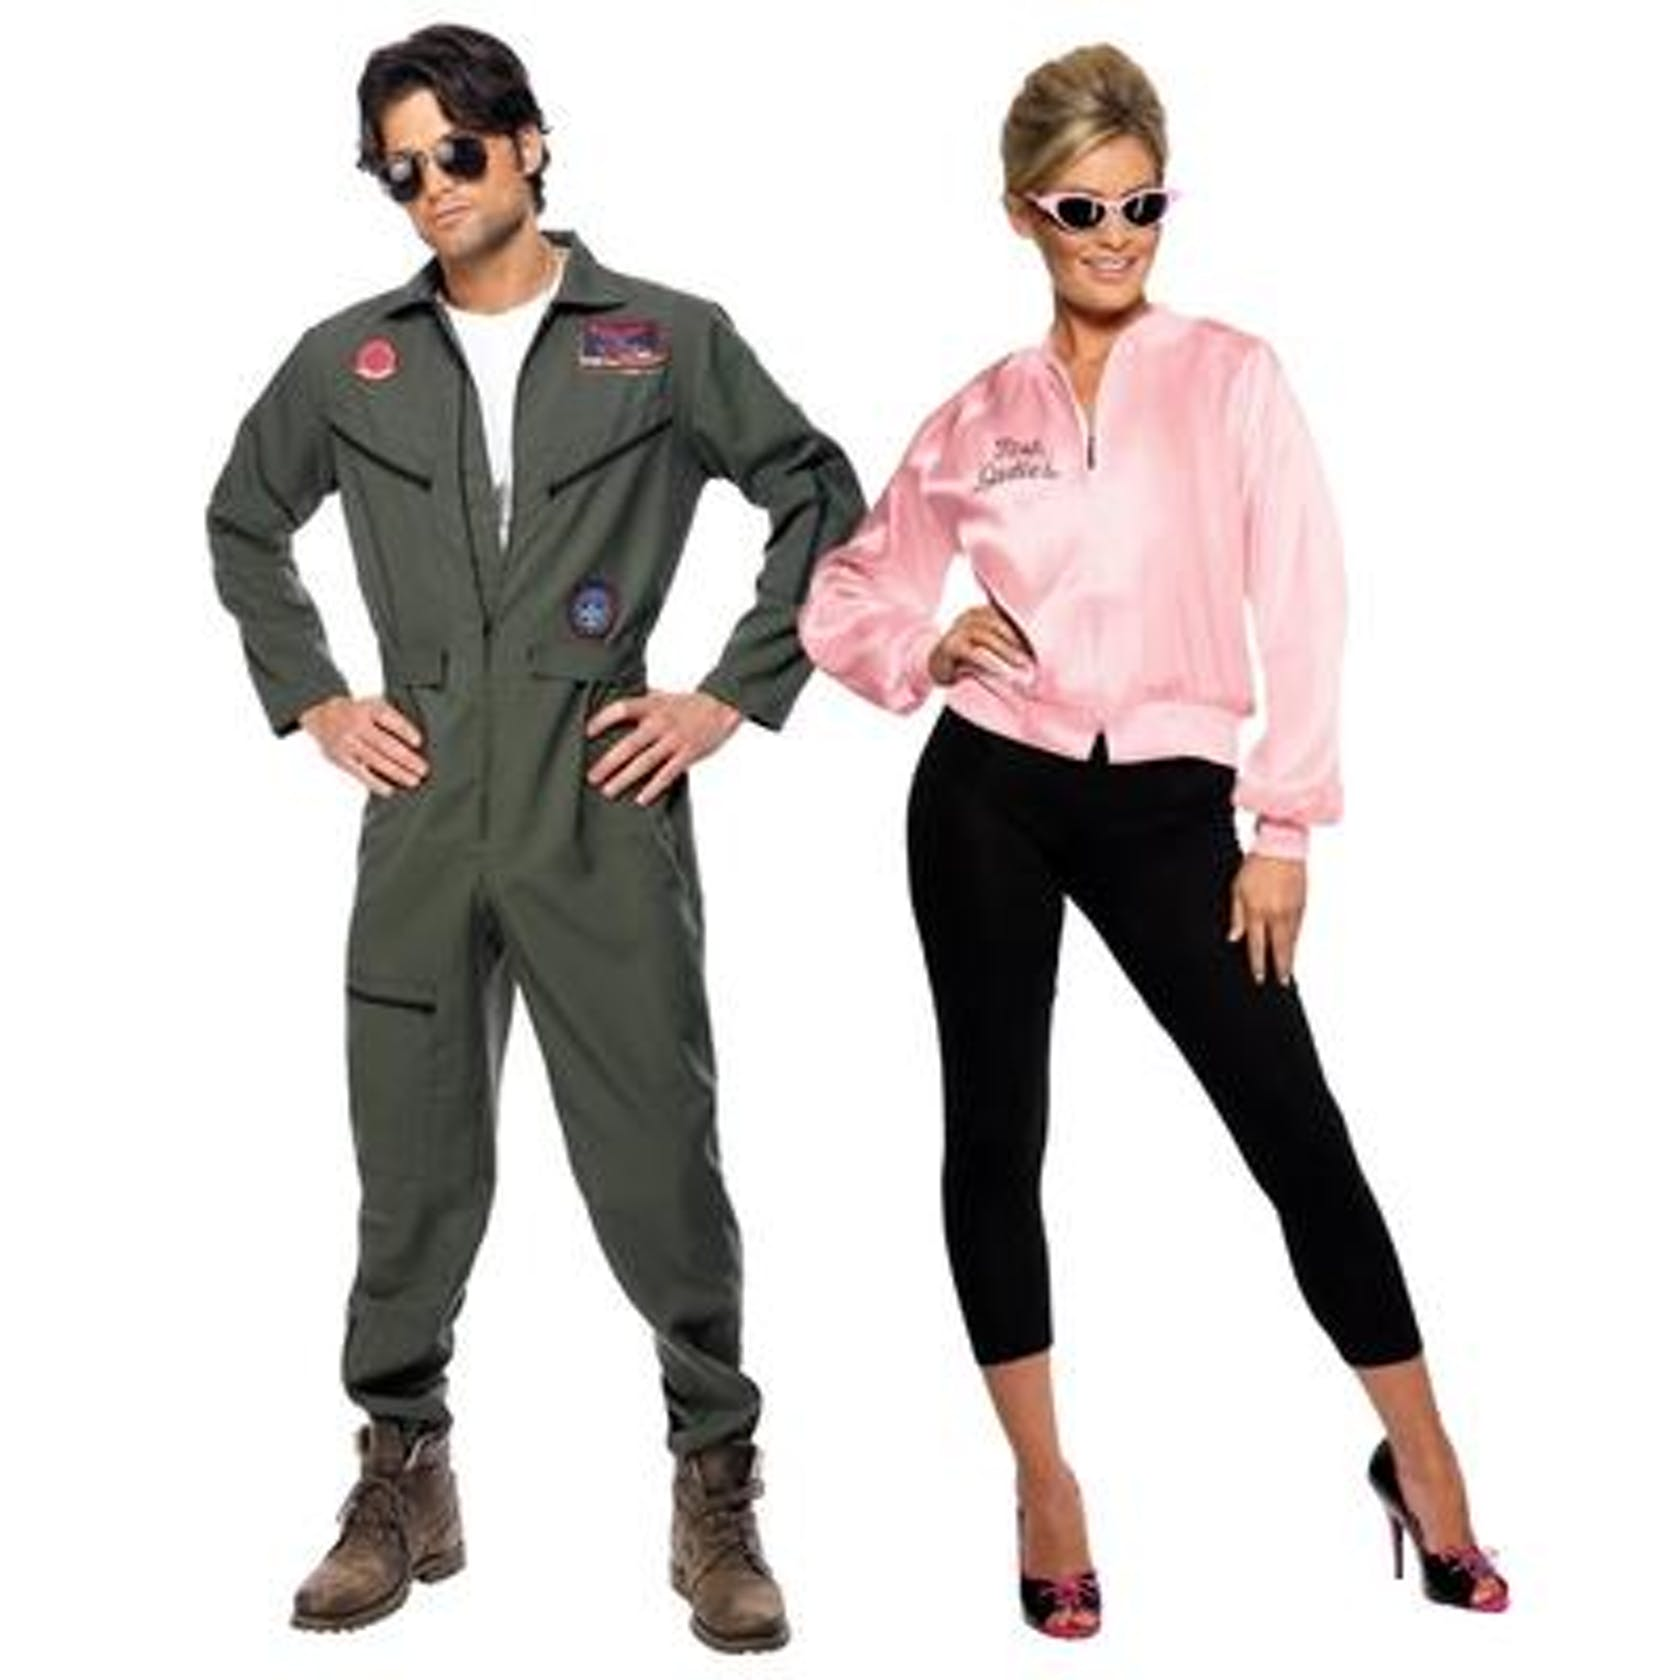 A couple dressed in movie themed costumes